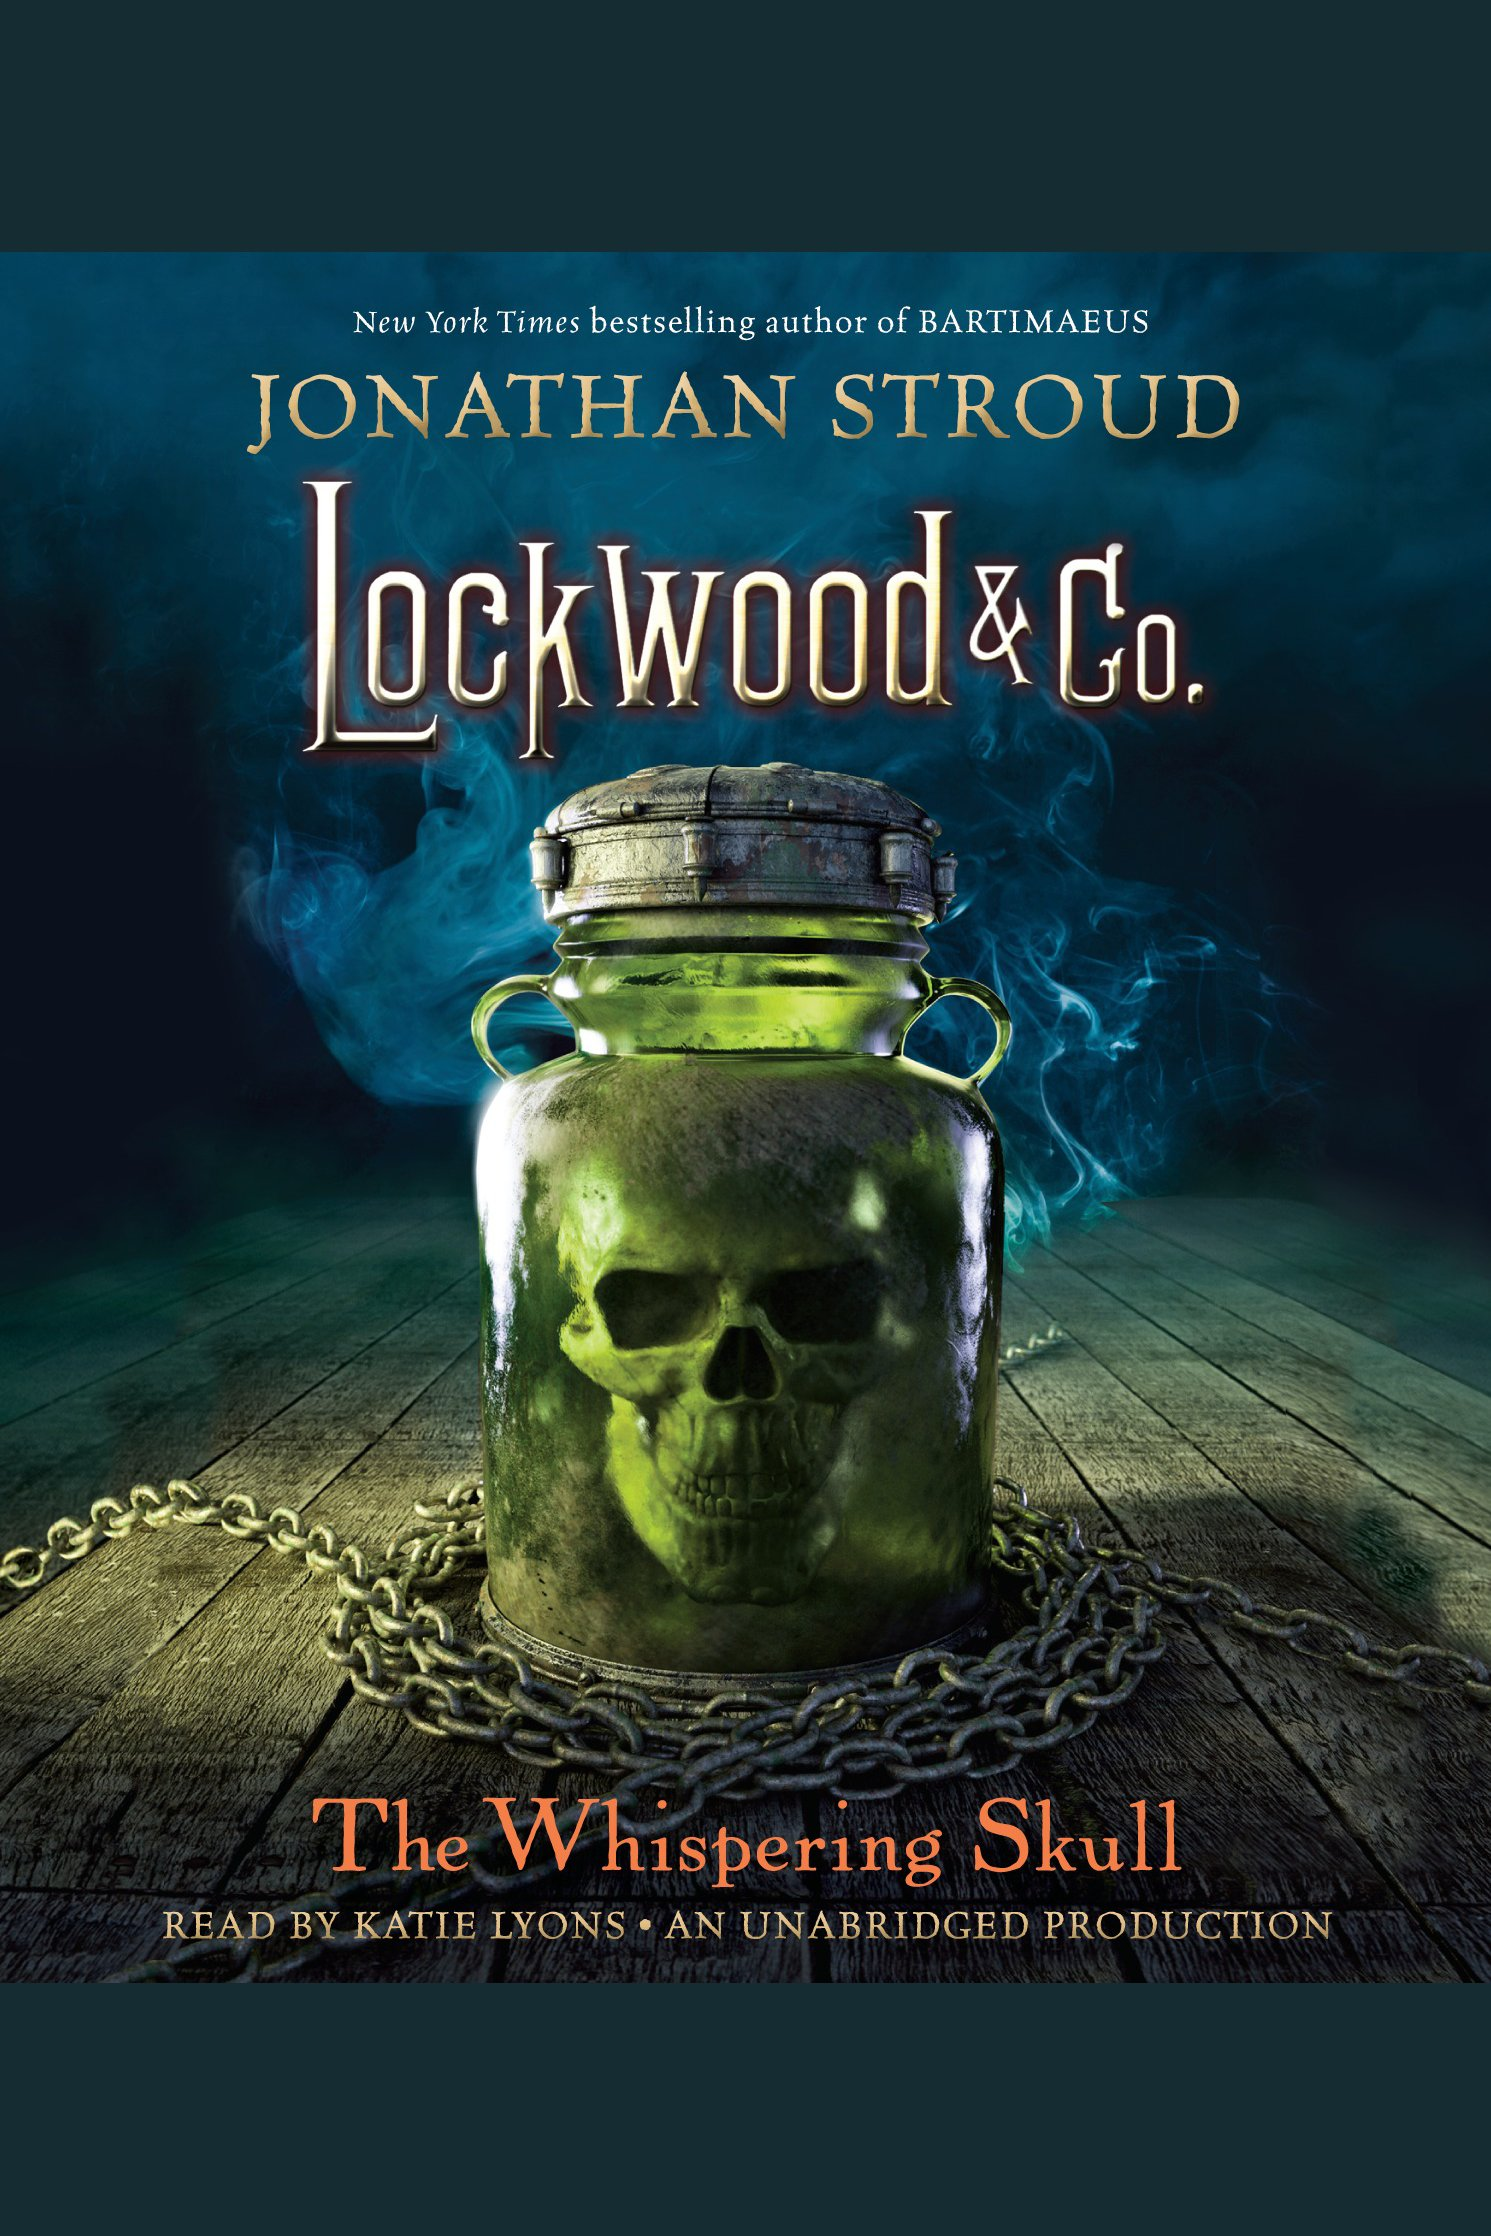 The whispering skull cover image